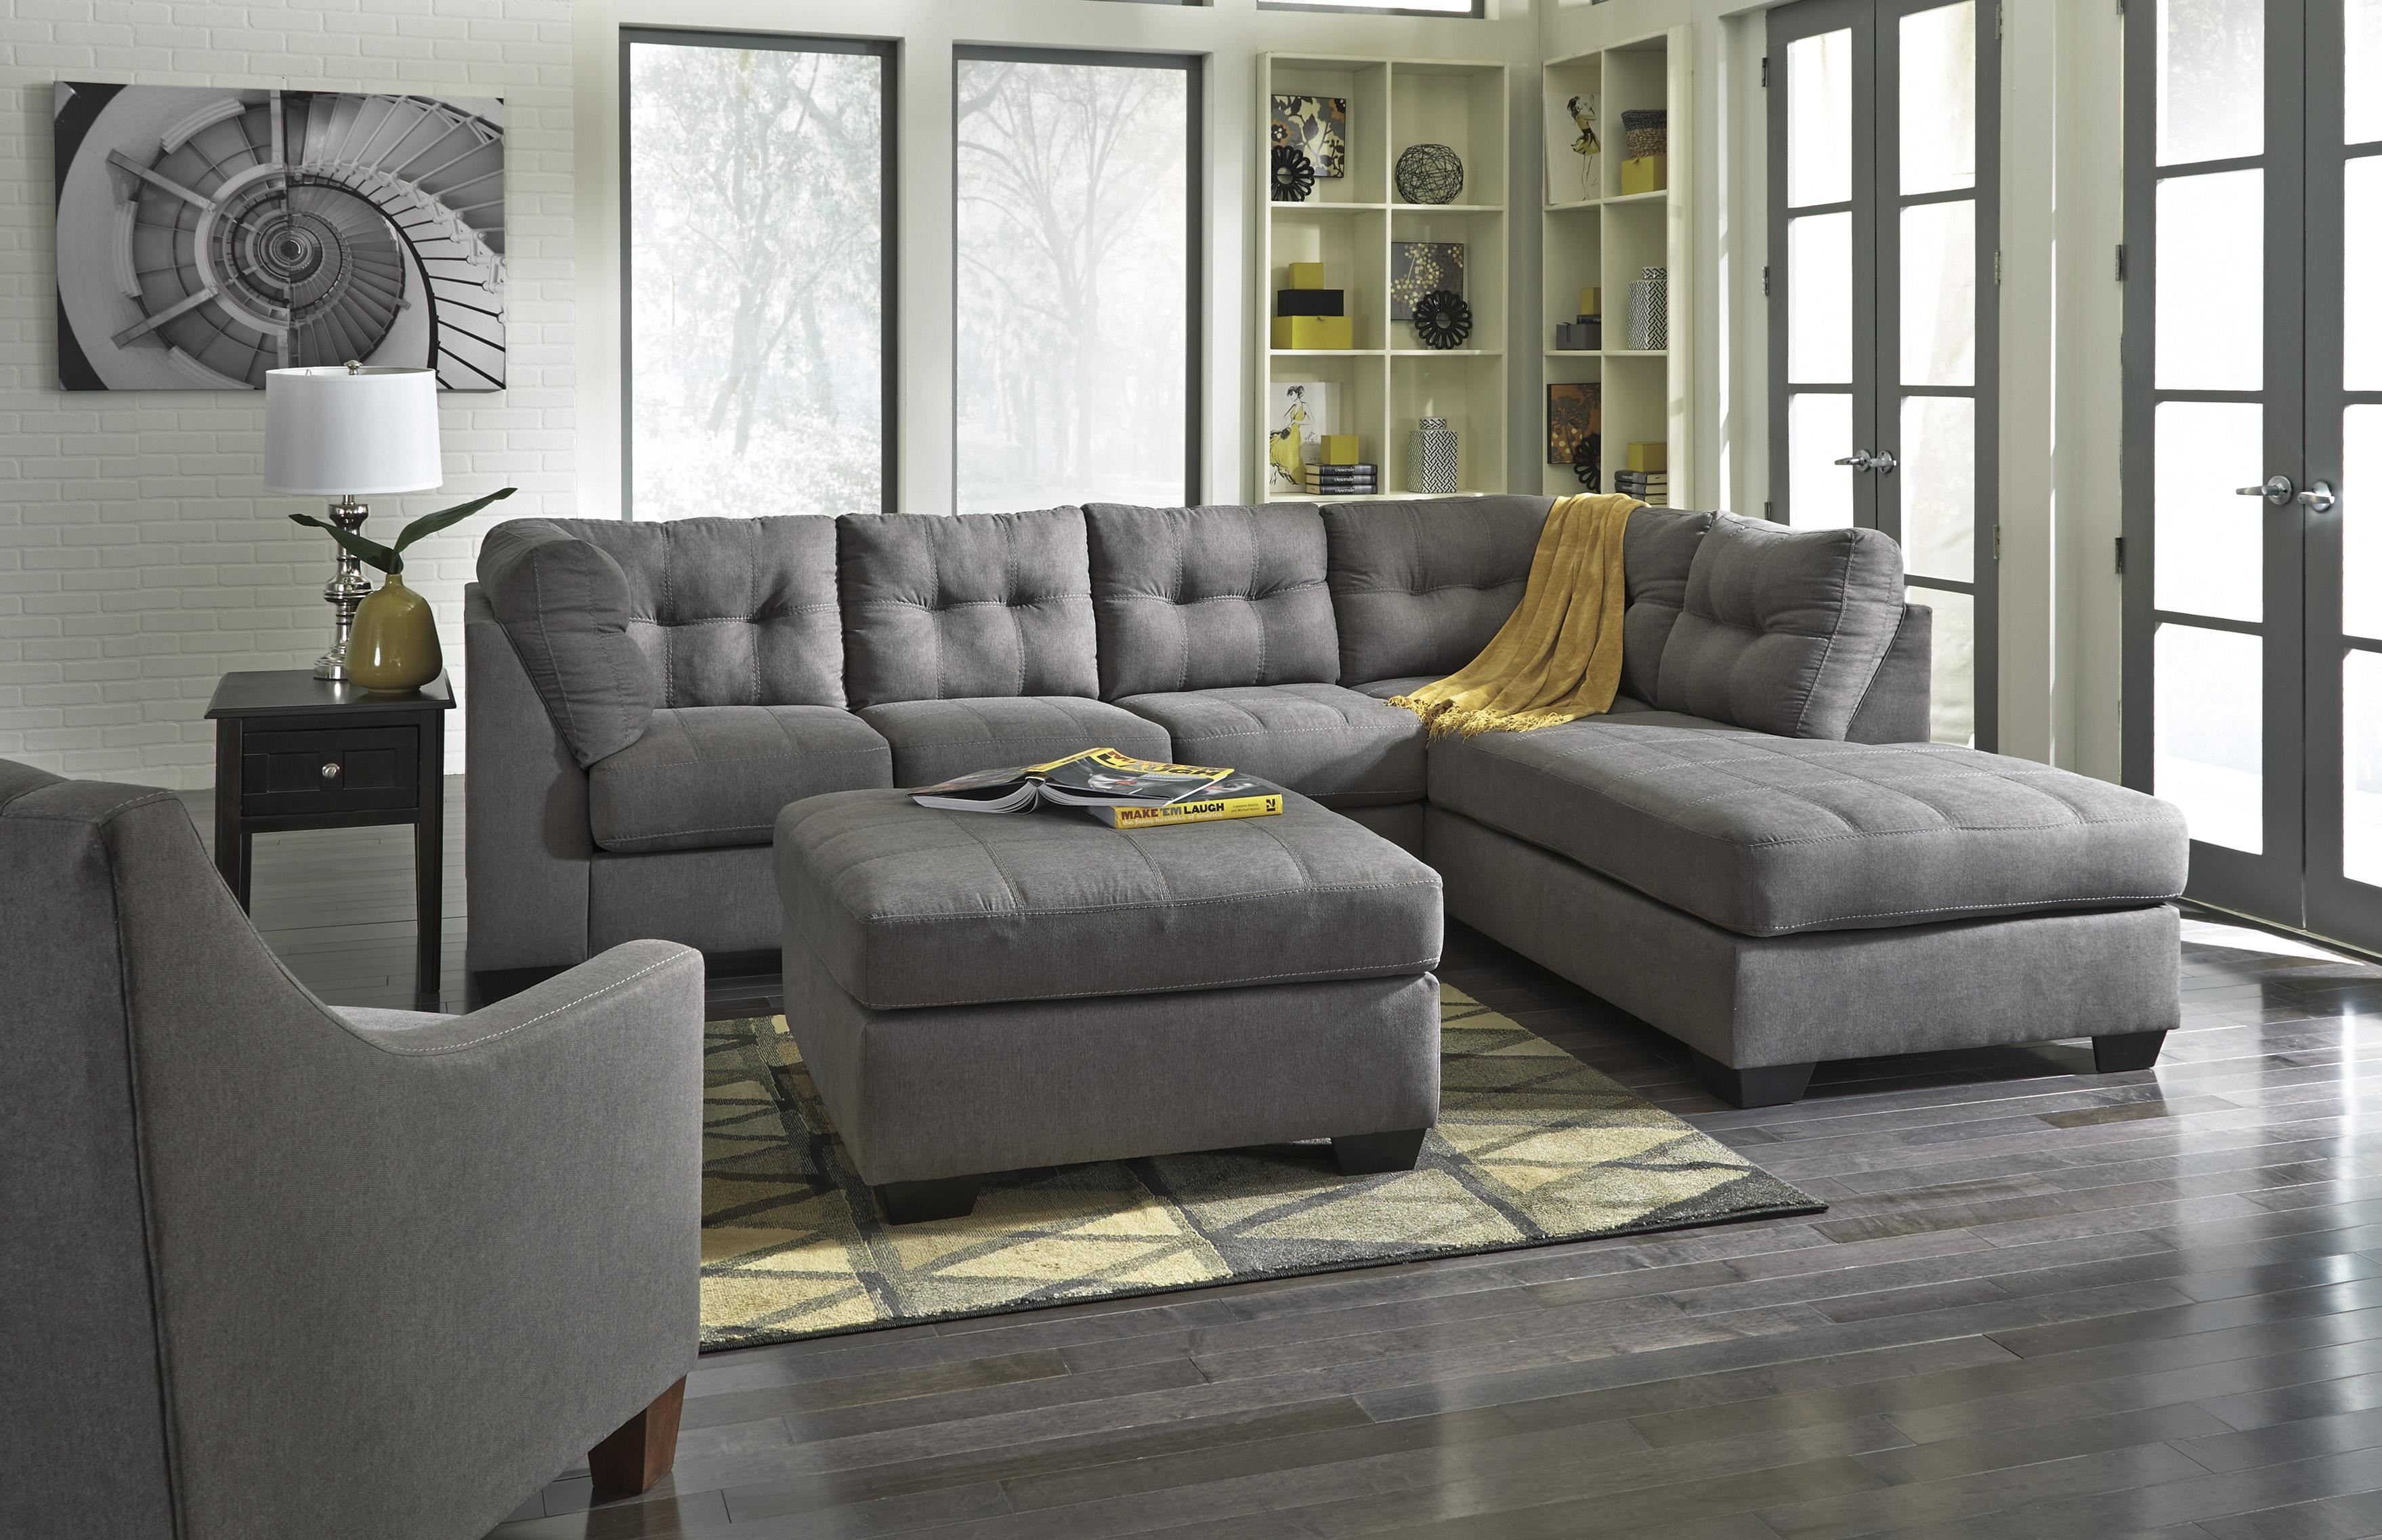 Benchcraft Maier – Charcoal 2 Piece Sectional With Right Chaise In Sectionals With Chaise And Ottoman (View 10 of 10)